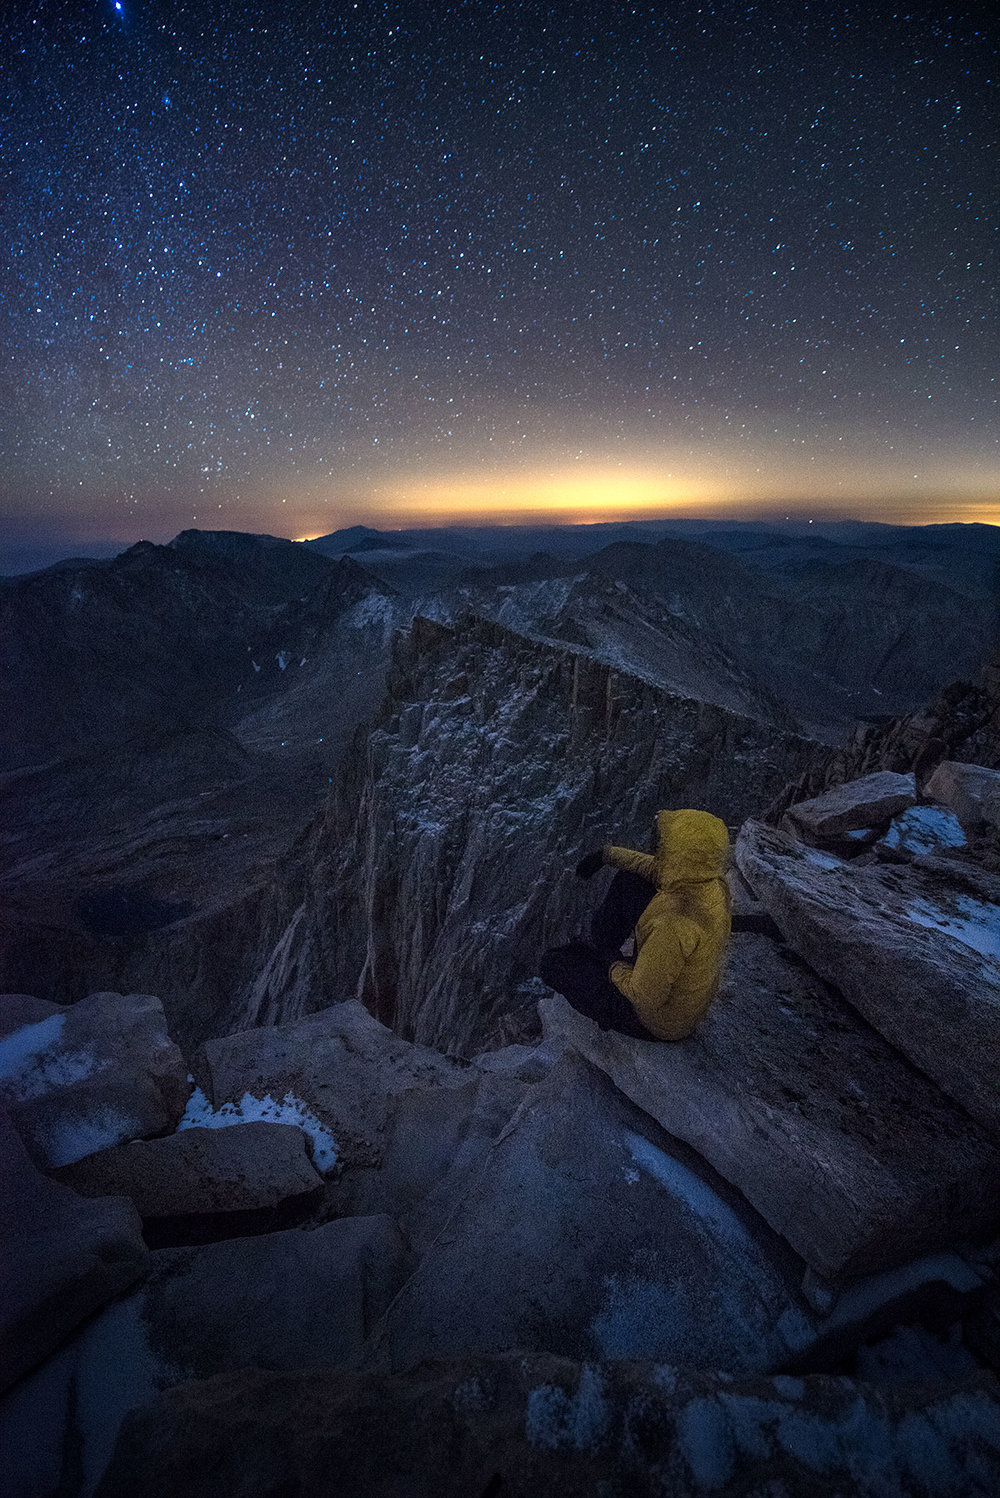 austin-trigg-patagonia-hiking-john-muir-trail-wilderness-california-adventure-outside-camp-sierra-nevada-lifestyle-mt-whitney-summit-stars-night.jpg